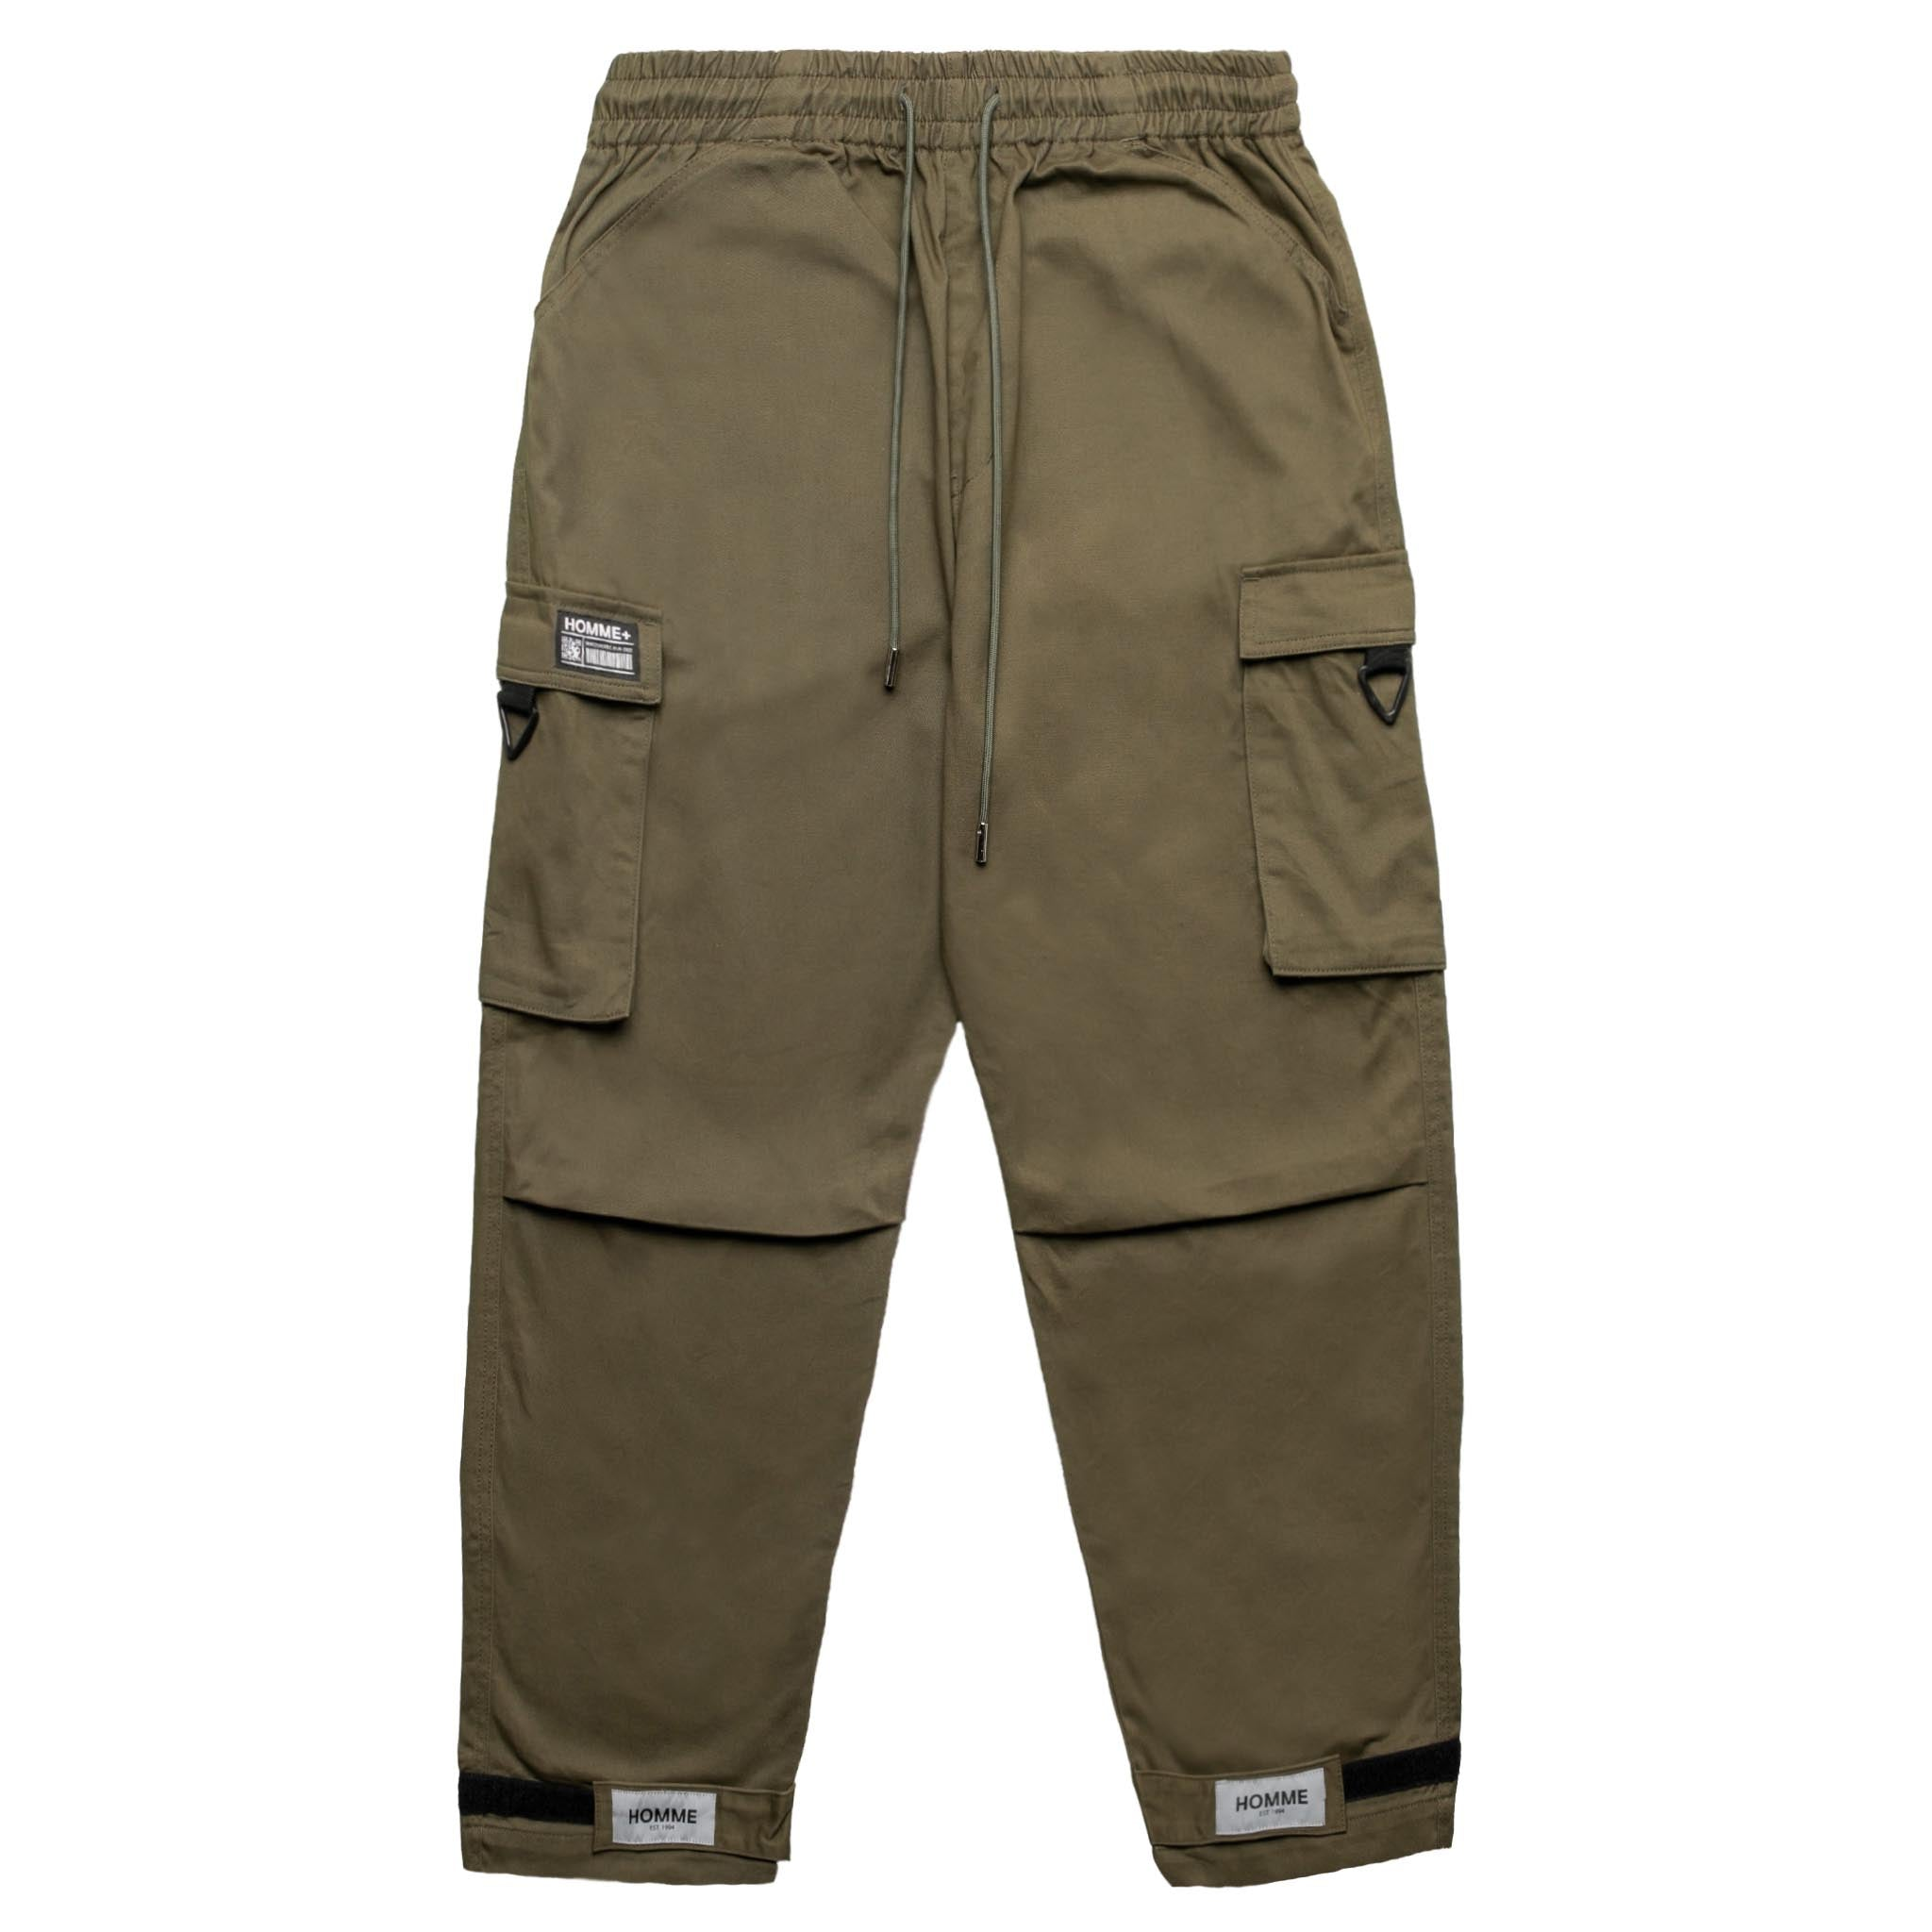 HOMME+ Reflective Strap Tech Cargo Pants Army